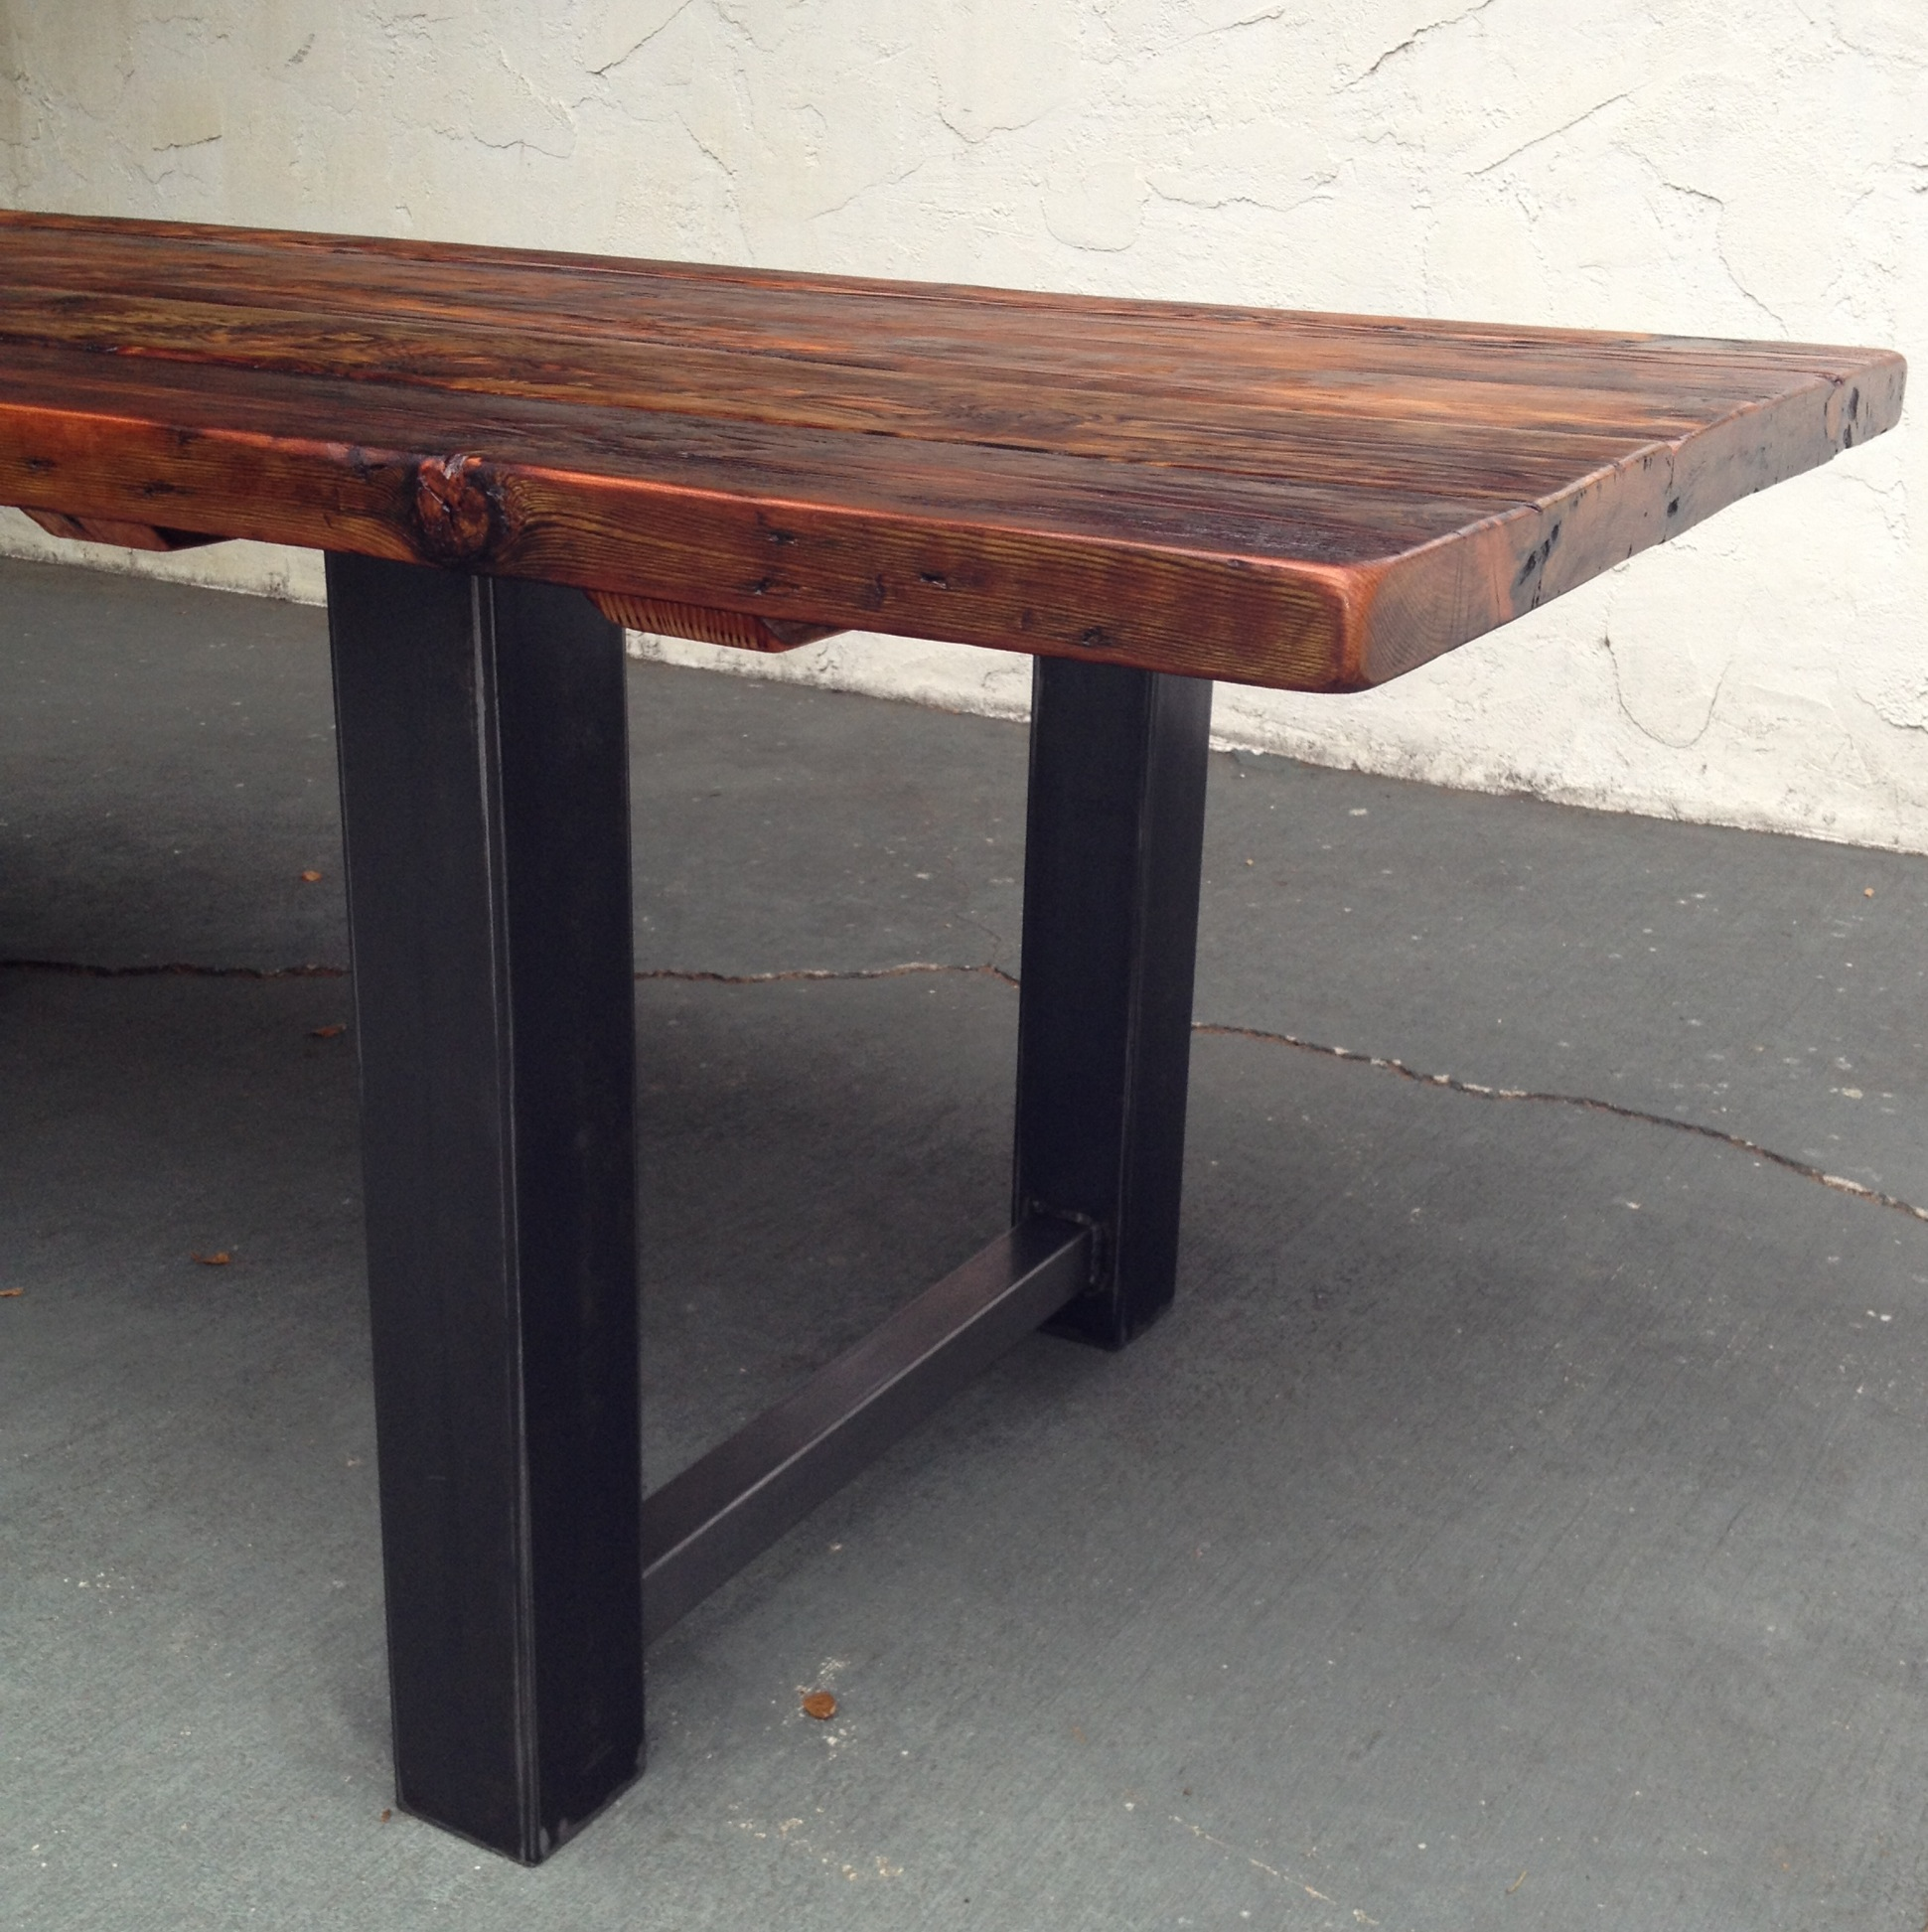 Reclaimed Wood and Metal Dining Table 5. Reclaimed Wood and Steel Dining Table   The Coastal Craftsman